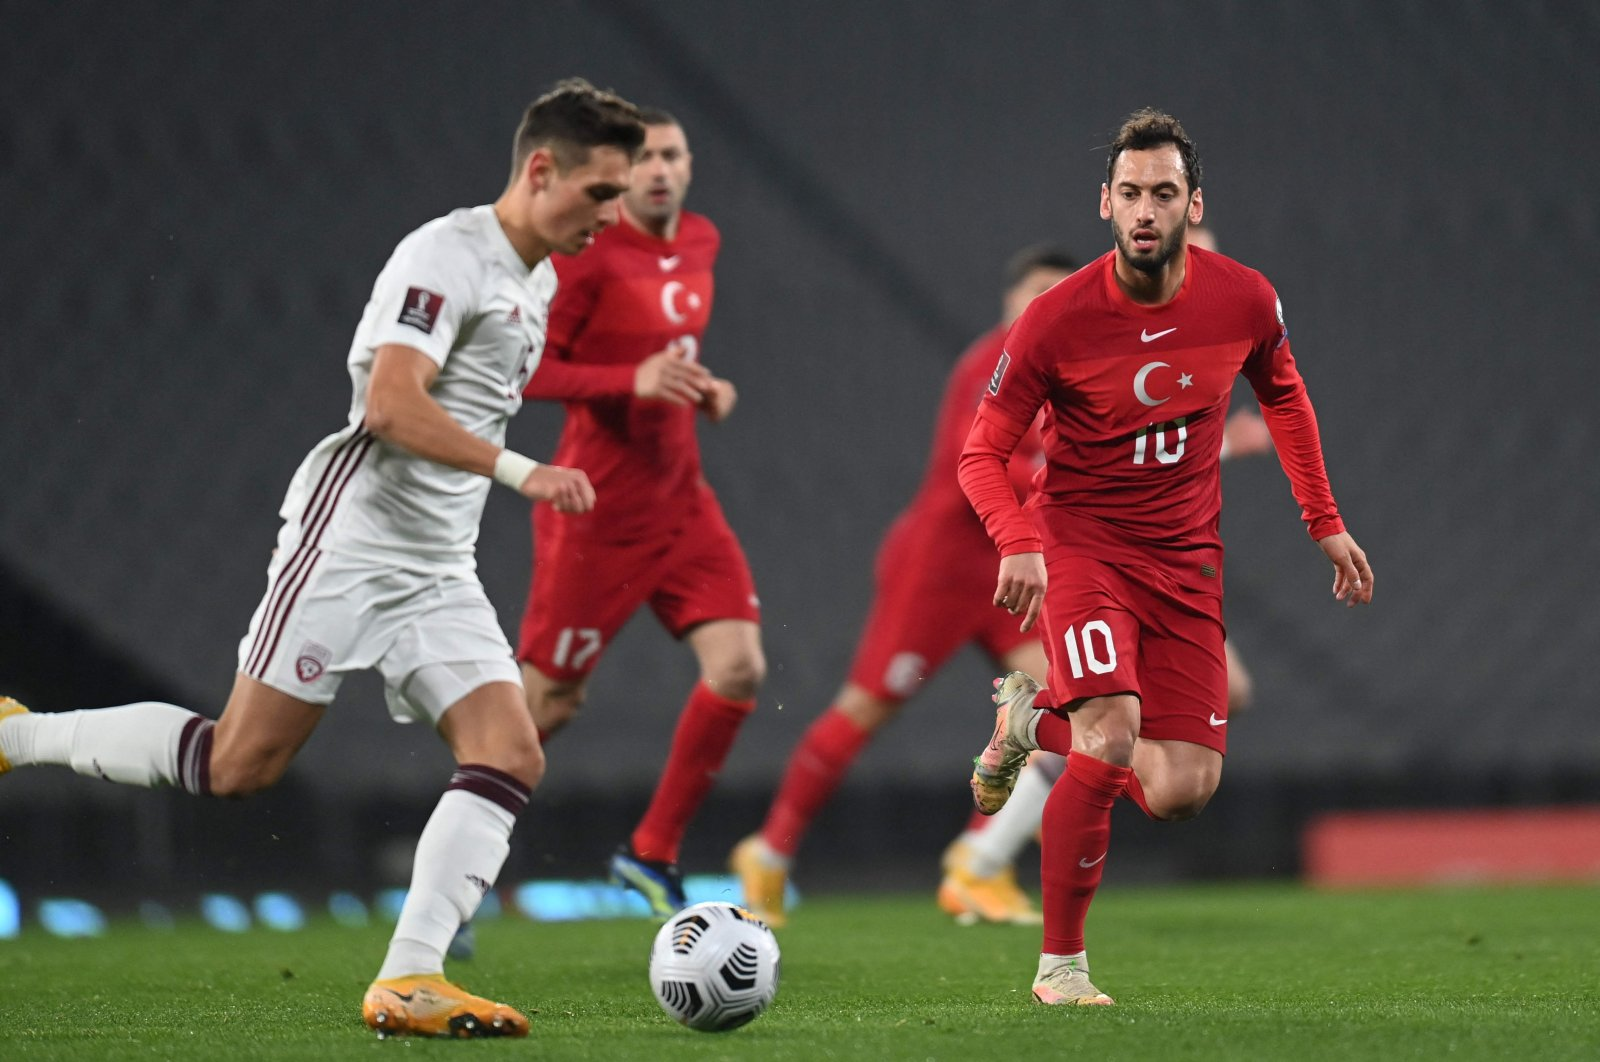 Latvia's forward Vladislavs Fjodorovs (L) runs with the ball in front of Turkey's midfielder Hakan Çalhanoğlu (R) during the FIFA World Cup Qatar 2022 qualification Group G football match between Turkey and Latvia at the Olympic Stadium, in Istanbul, on March 30, 2021. (AFP Photo)